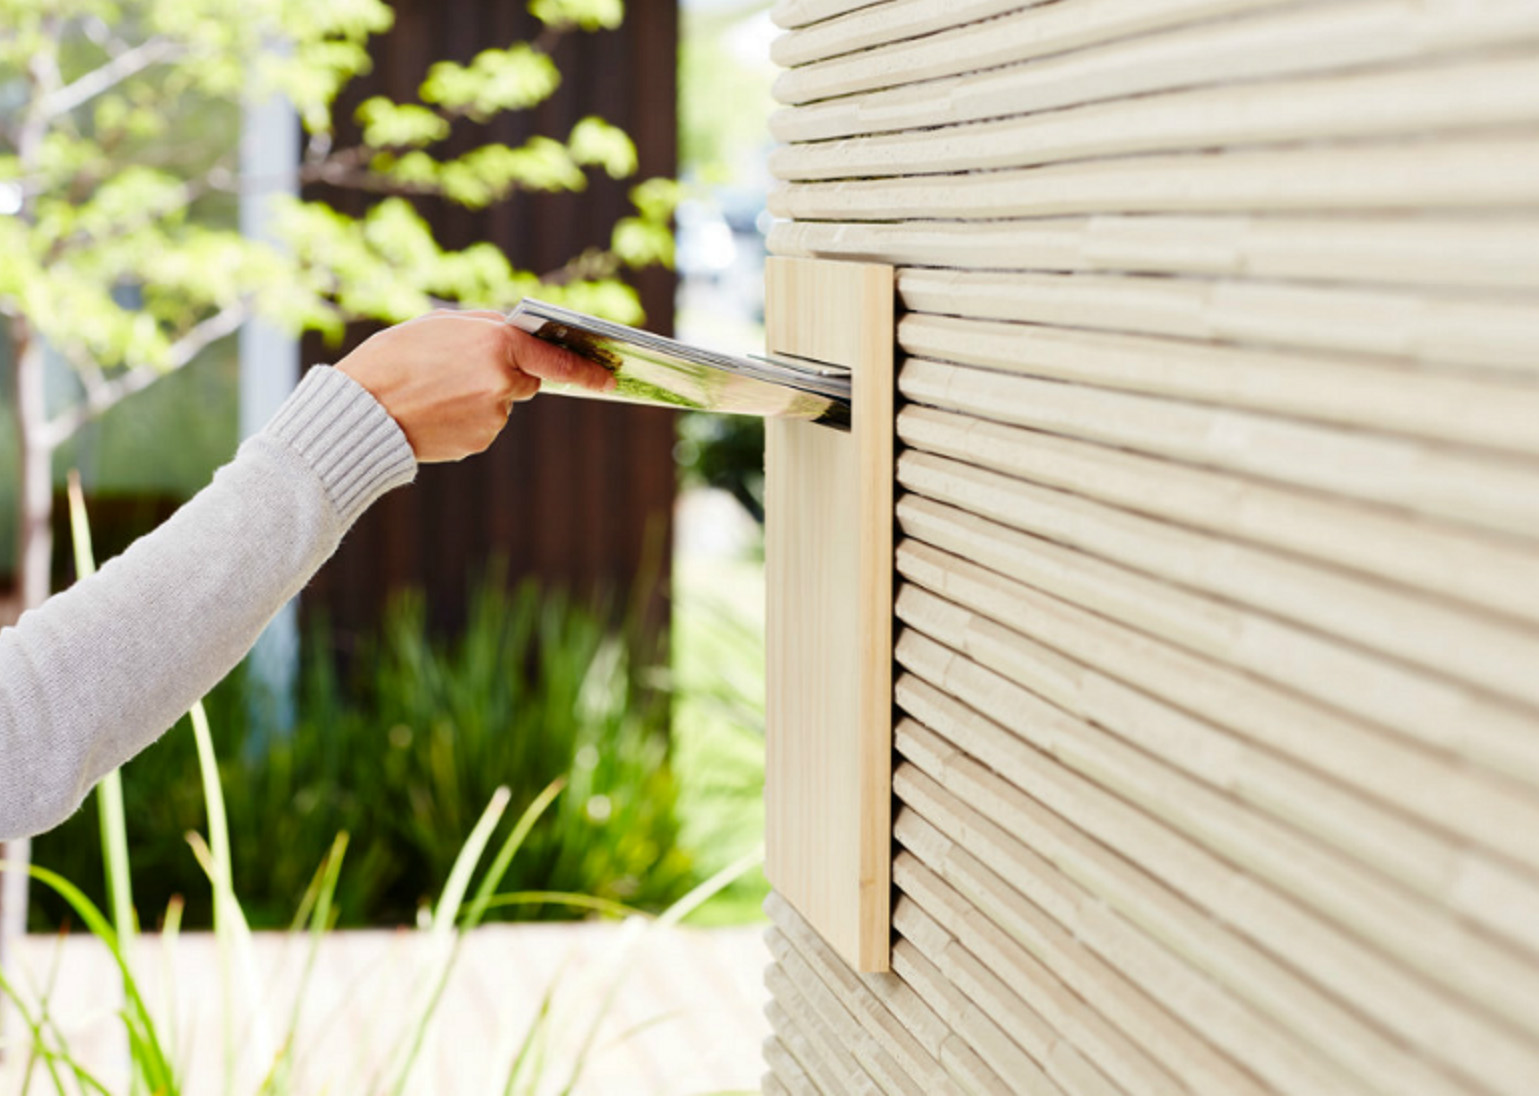 Fence Mounted Letter Box - Installed In Fence